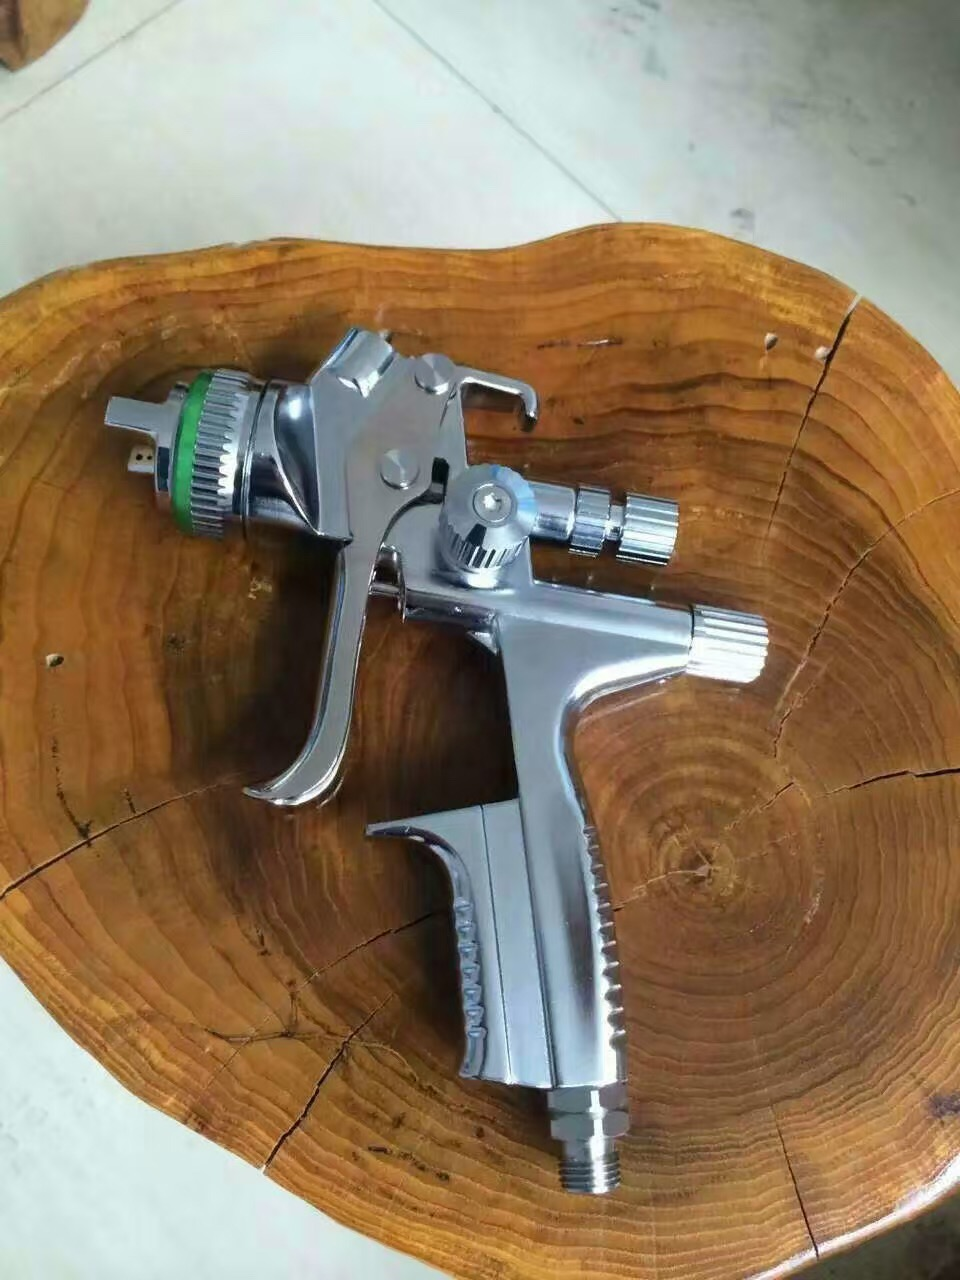 HIGH QUALITY JET5000B-120 HVLP PROFESSIONAL GRAITY Feed SPRAY GUN with 1.3mm nozzle air pneumatic spray gun car body painting forged version jet 5000b hvlp jet gun gravity spray gun with 1 3mm nozzle 5000b rp 4000b rp pneumatic spray gun car spray gun